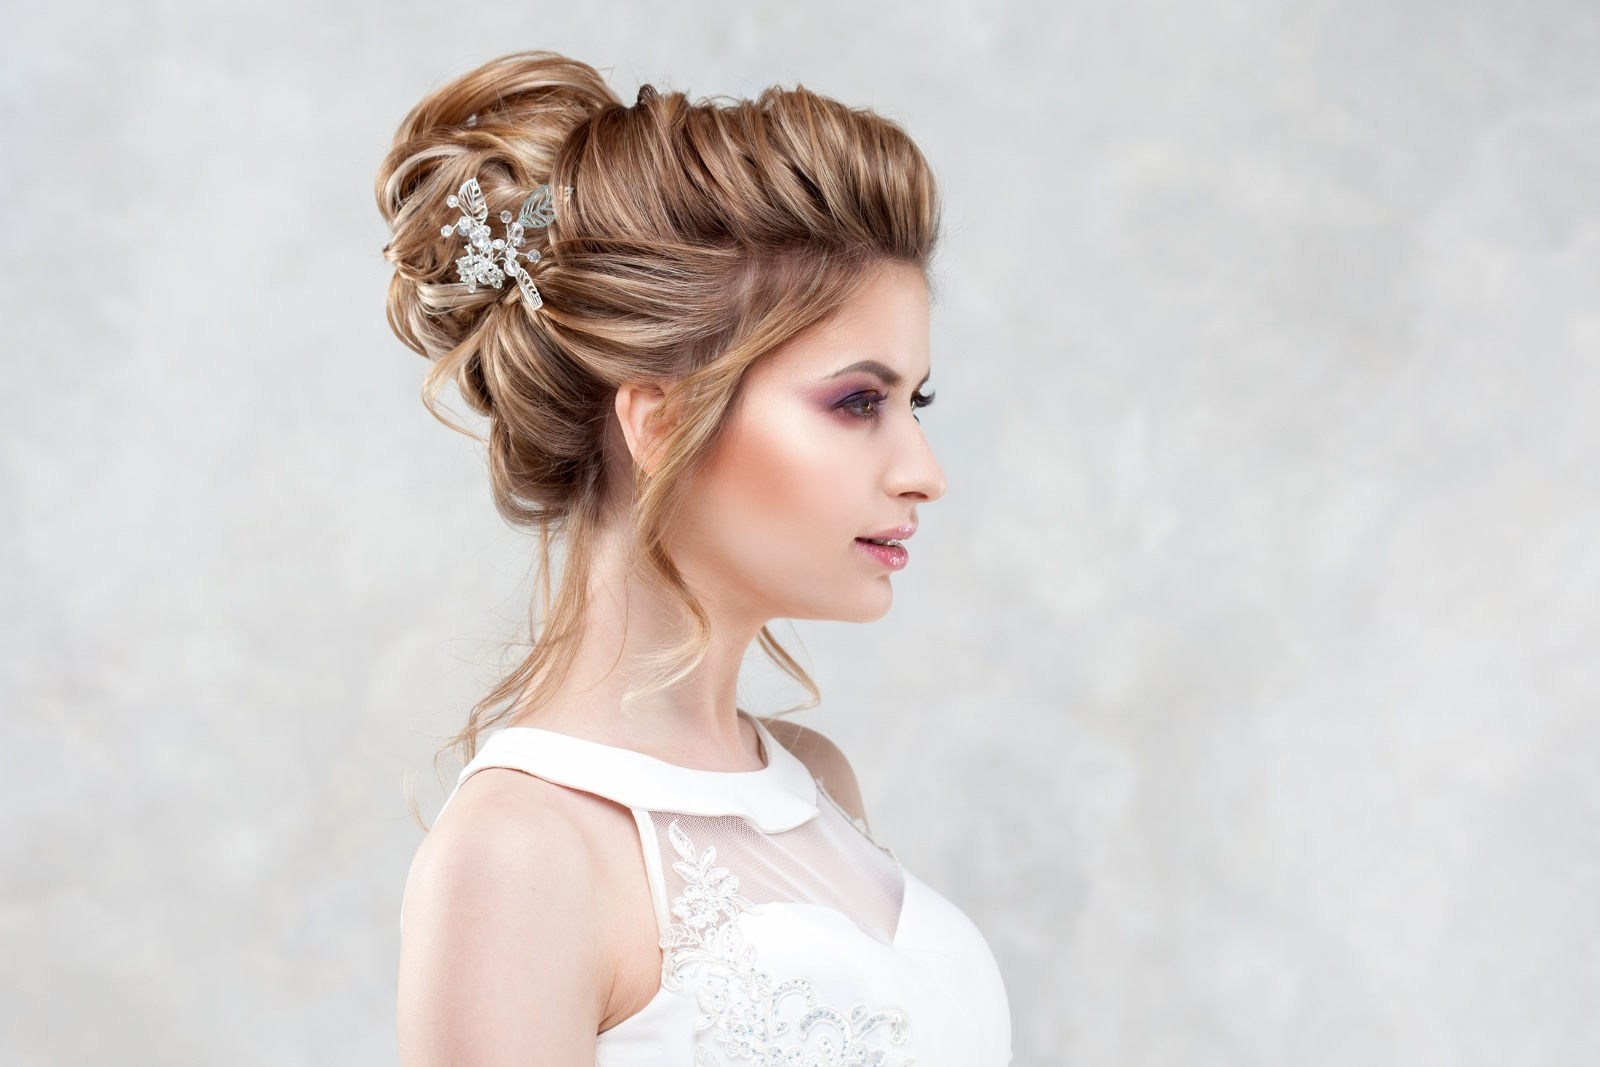 Wedding hairstyle, style and makeup for the celebration.